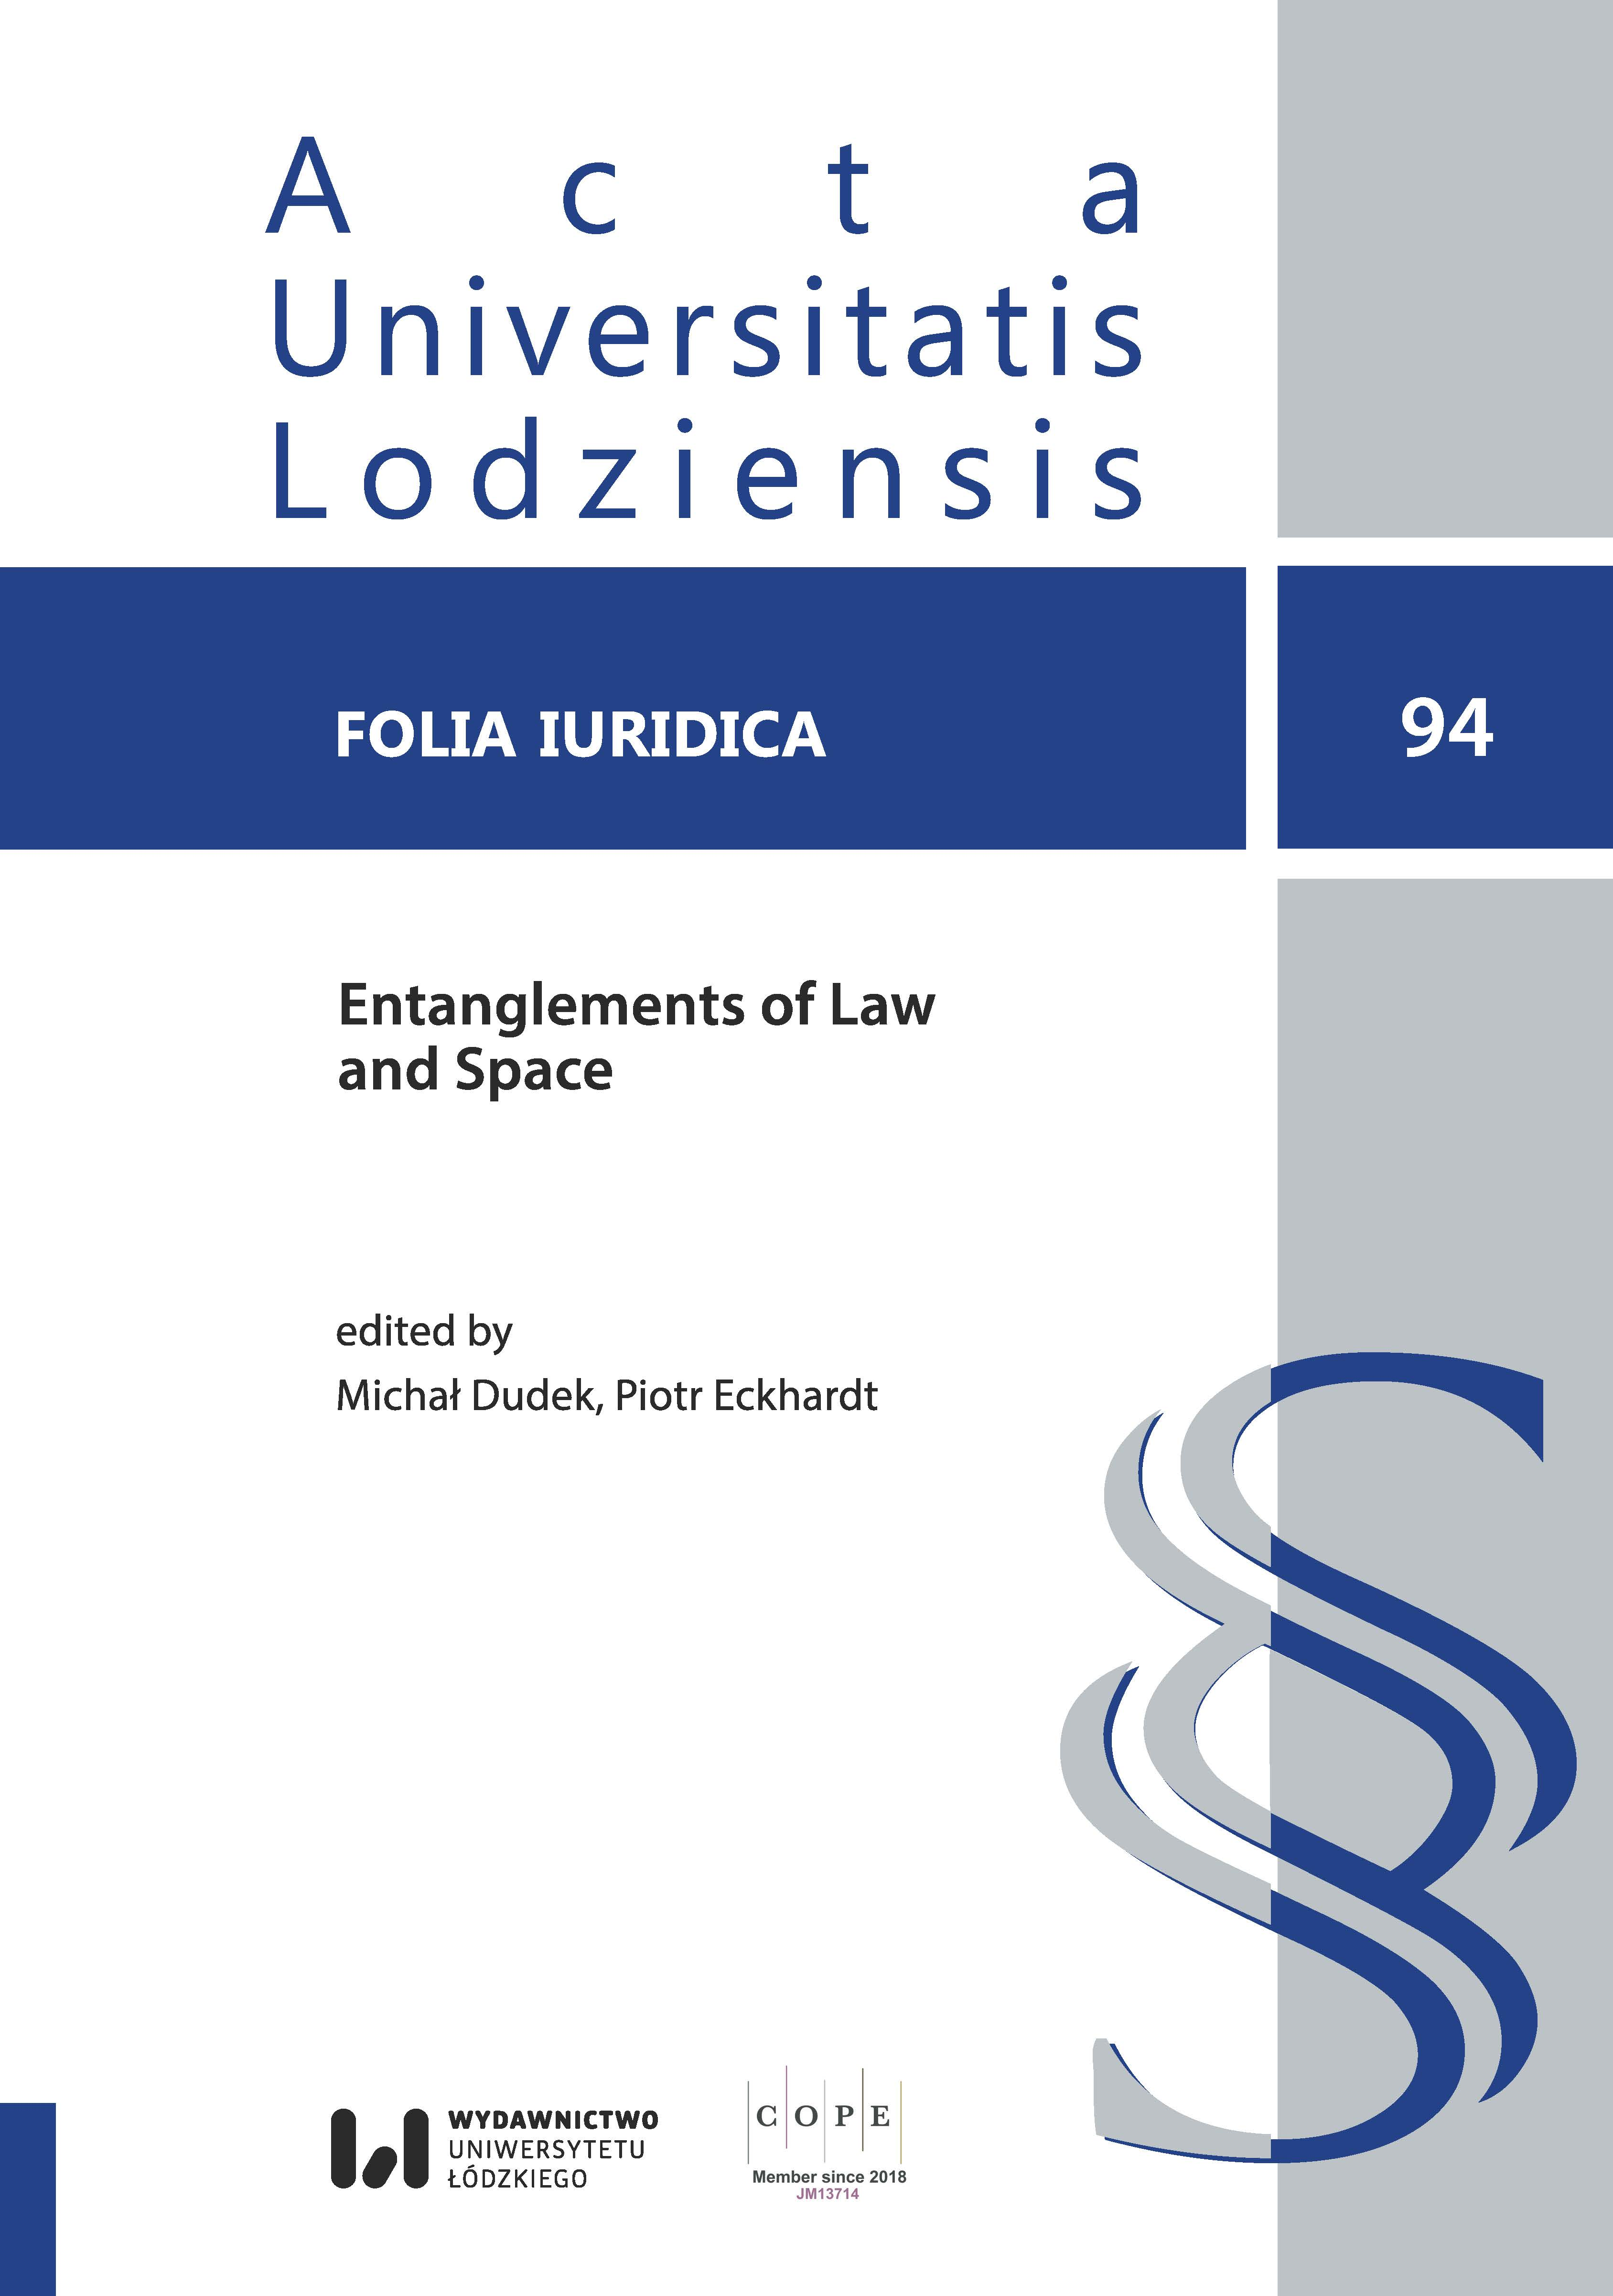 View Vol. 94 (2021): Entanglements of Law and Space